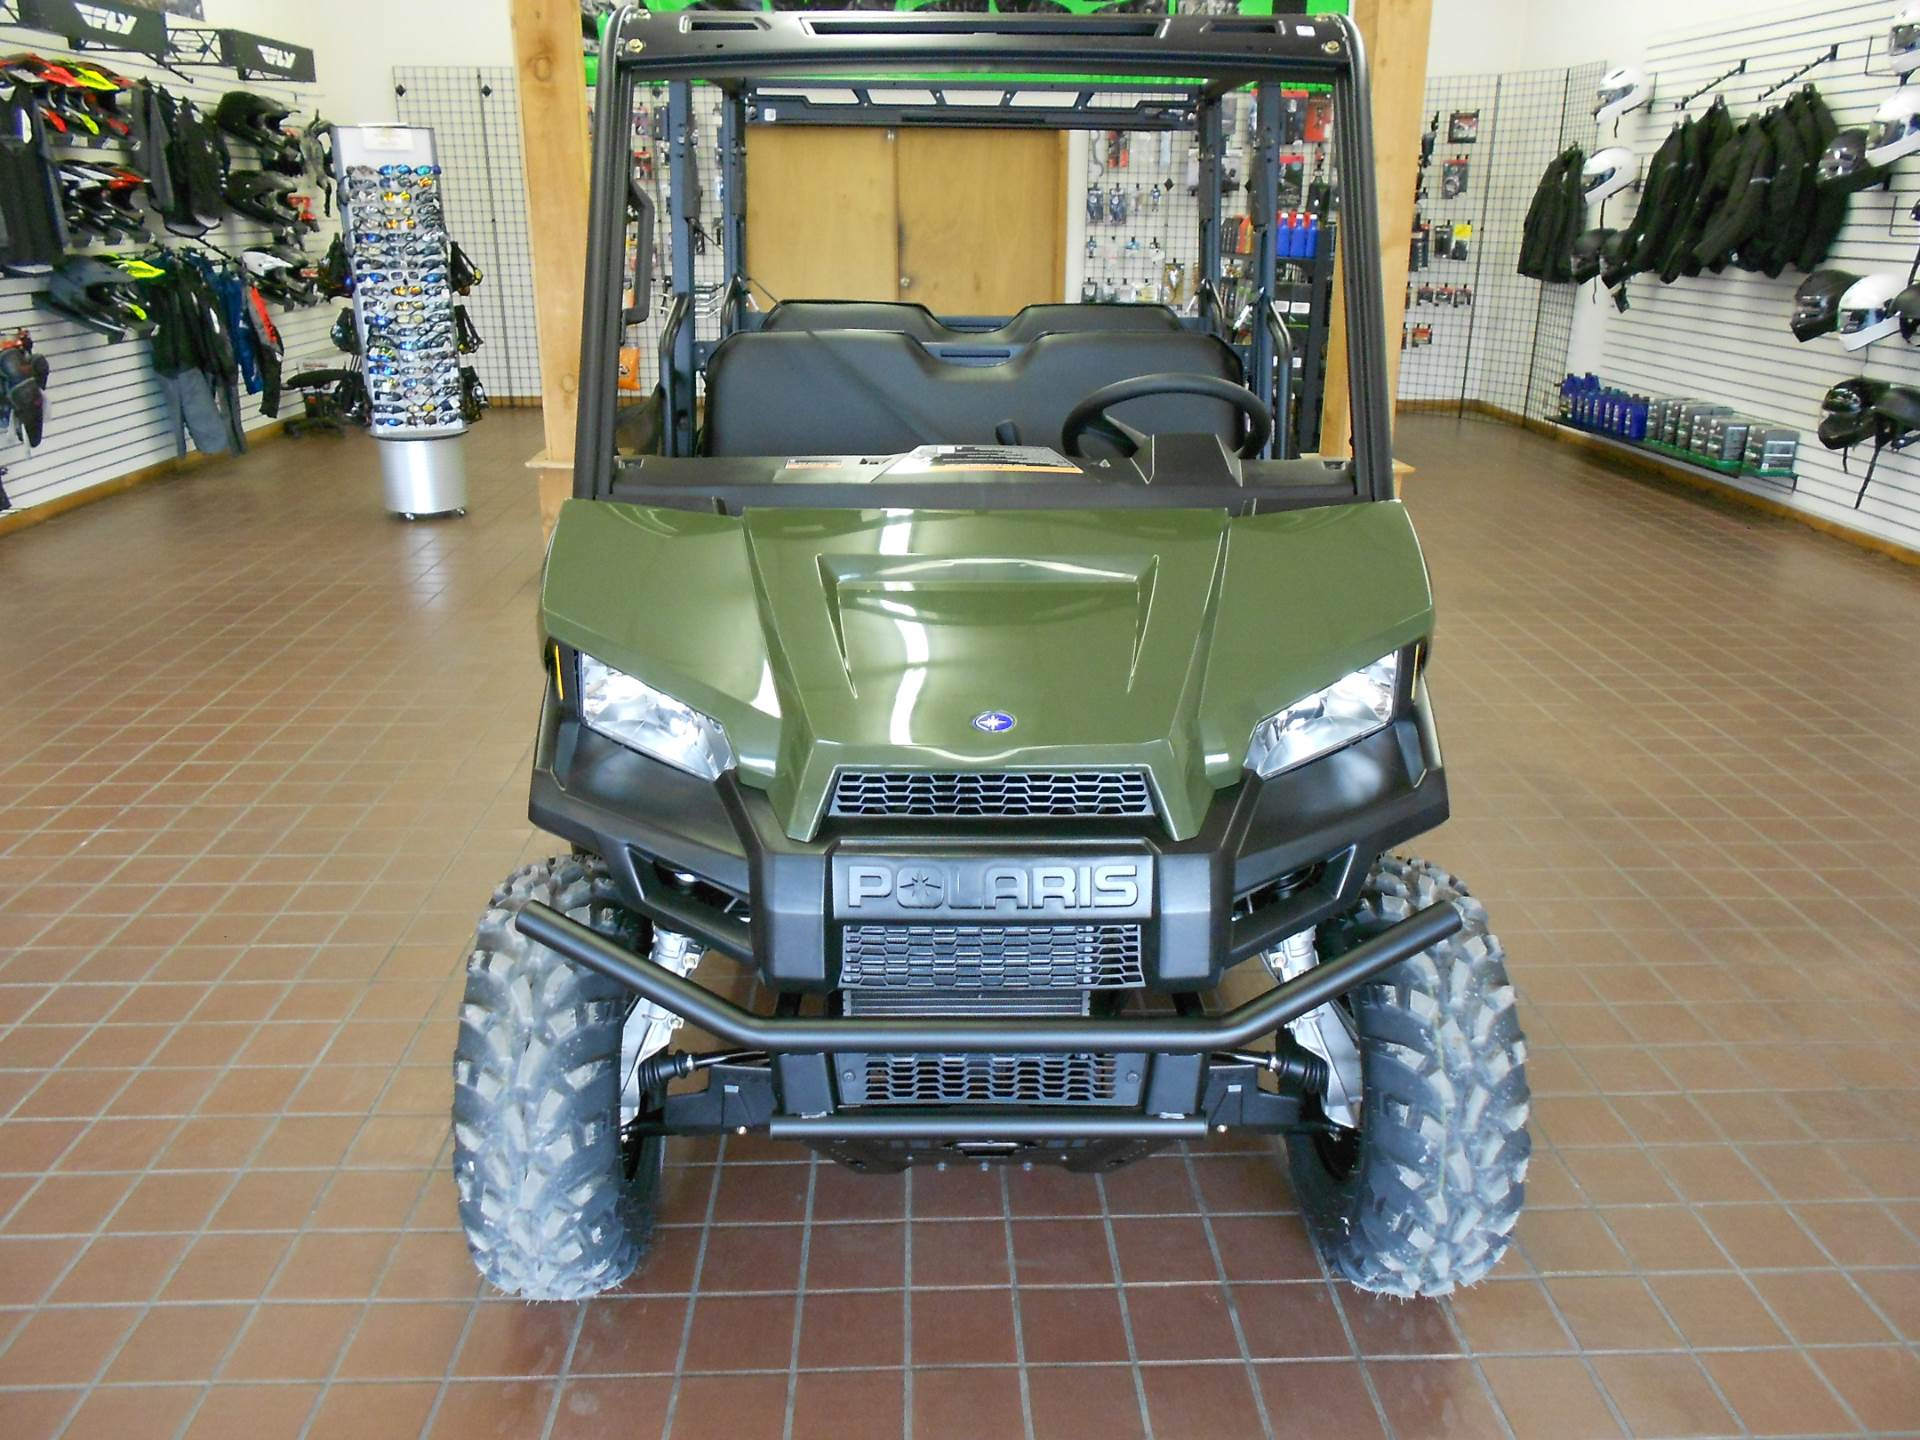 2021 Polaris Ranger Crew 570 in Abilene, Texas - Photo 2